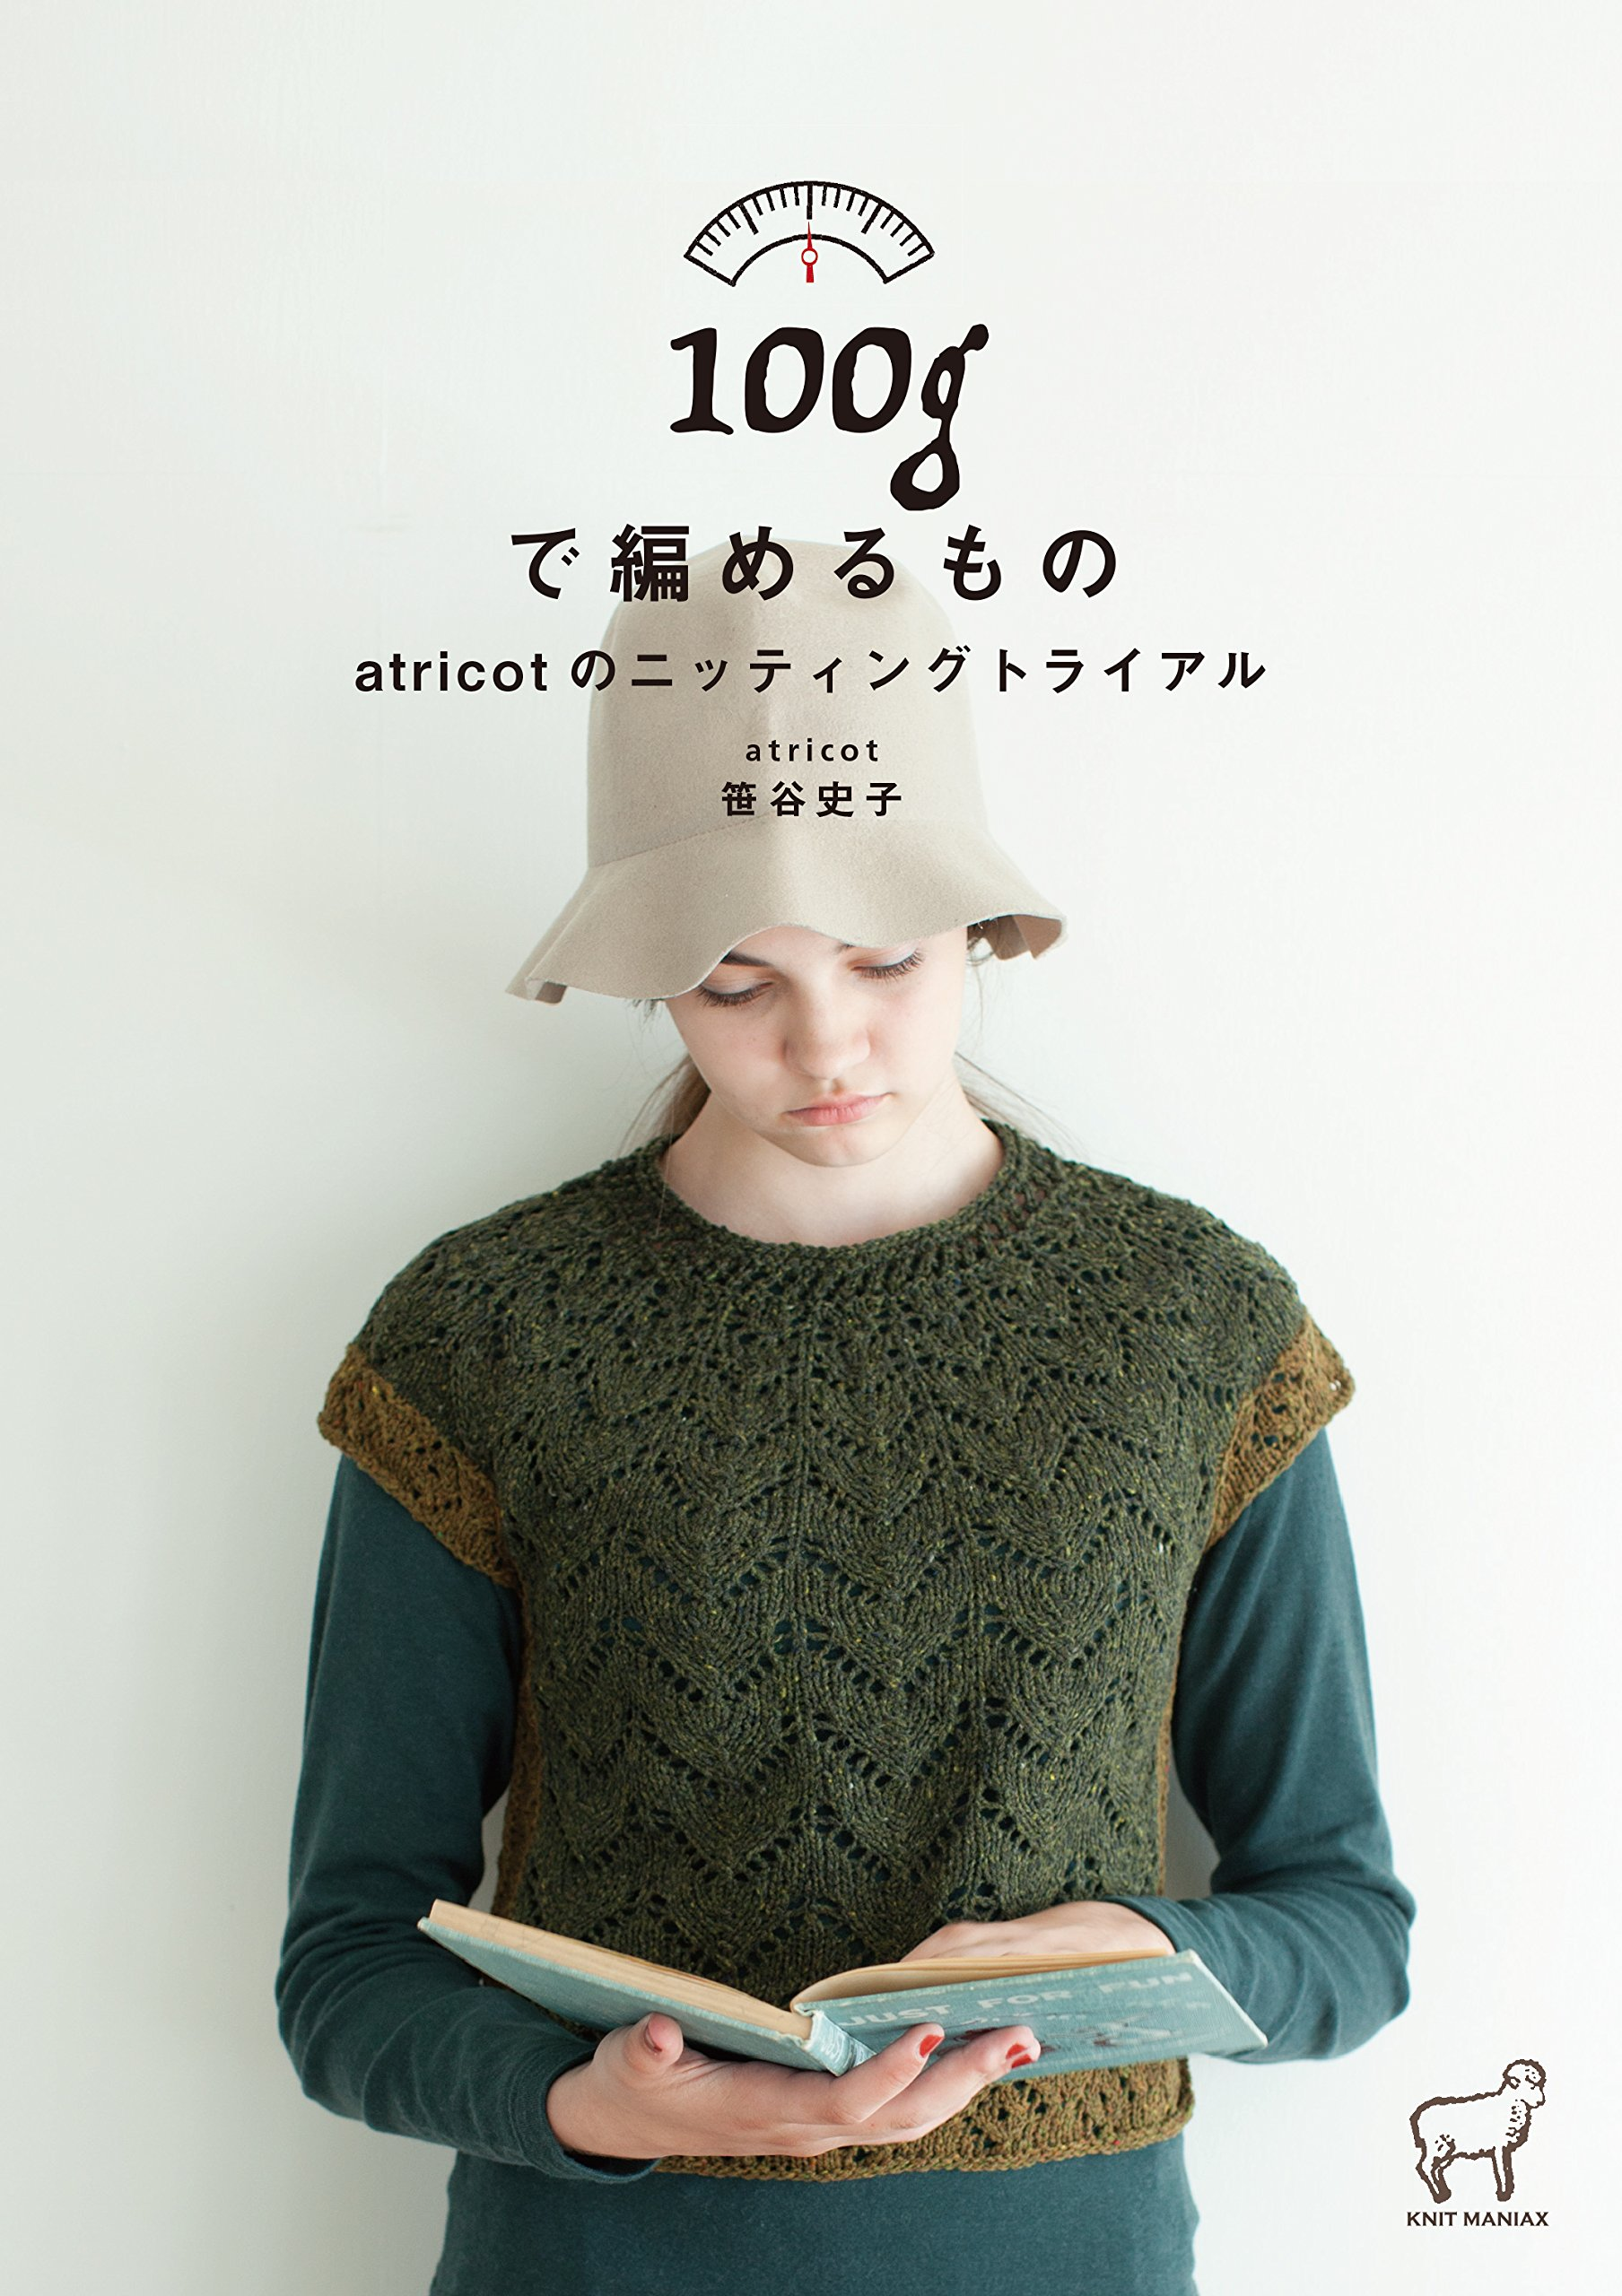 Things knit in 100g